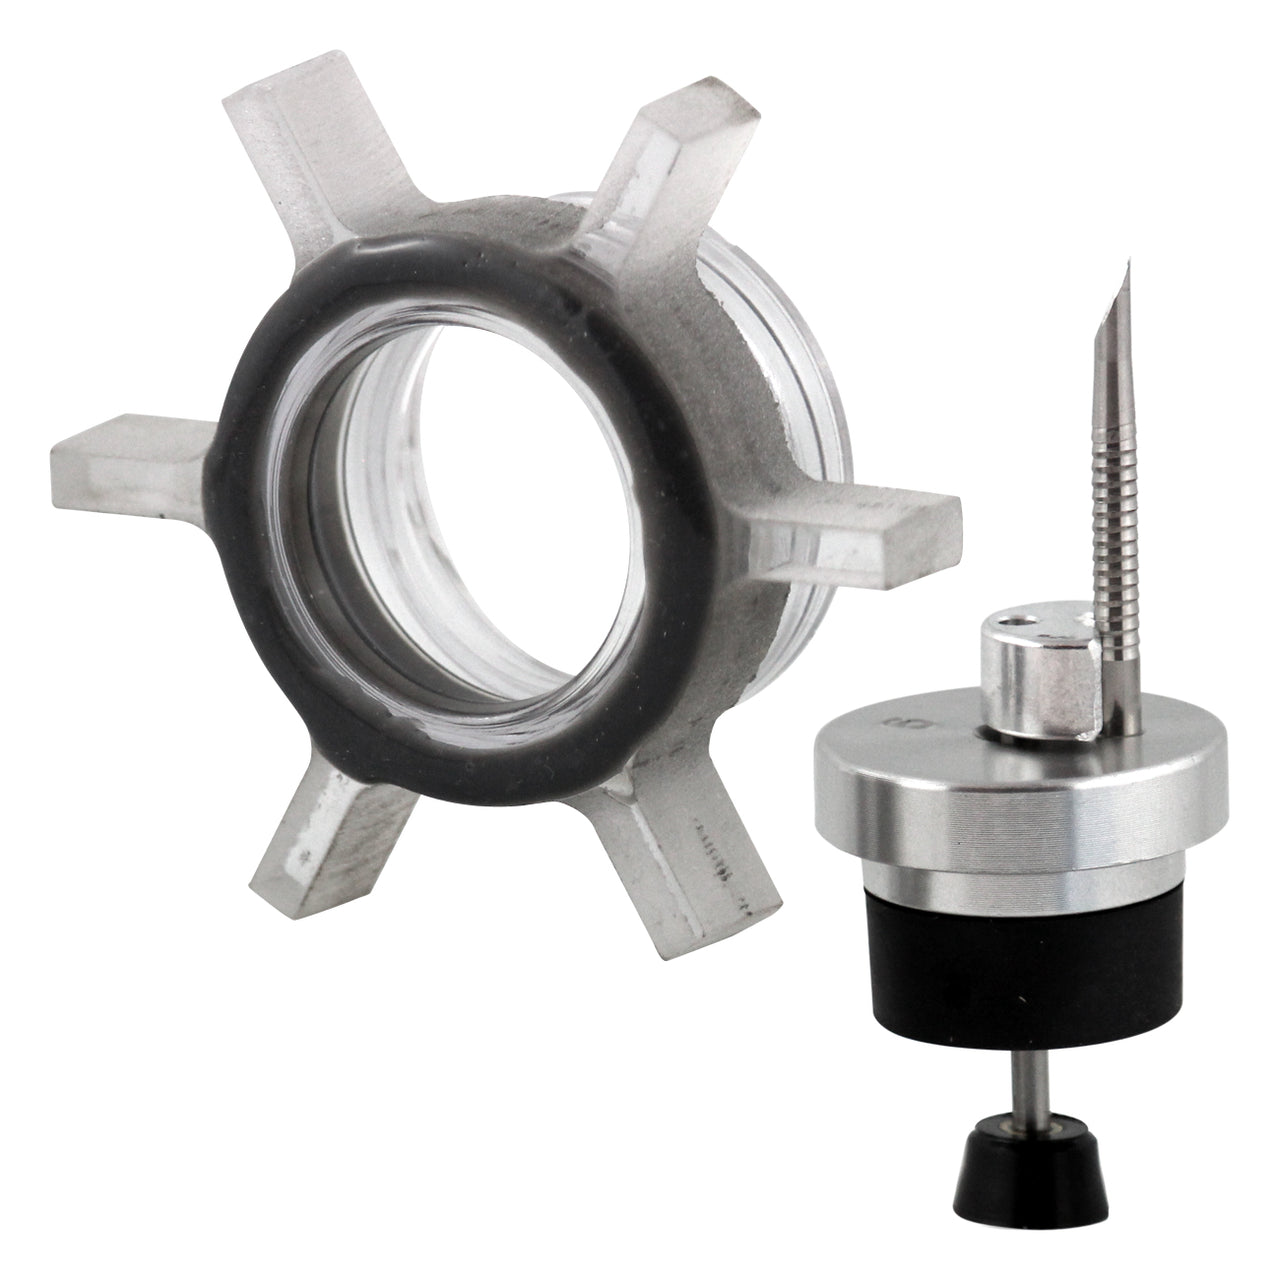 Medi-Dart Conversion Kit For Extension Pole #6 Needle (Mdakewn) - Crossbow Medi-Dart Injection System Medi-Dart - Canada